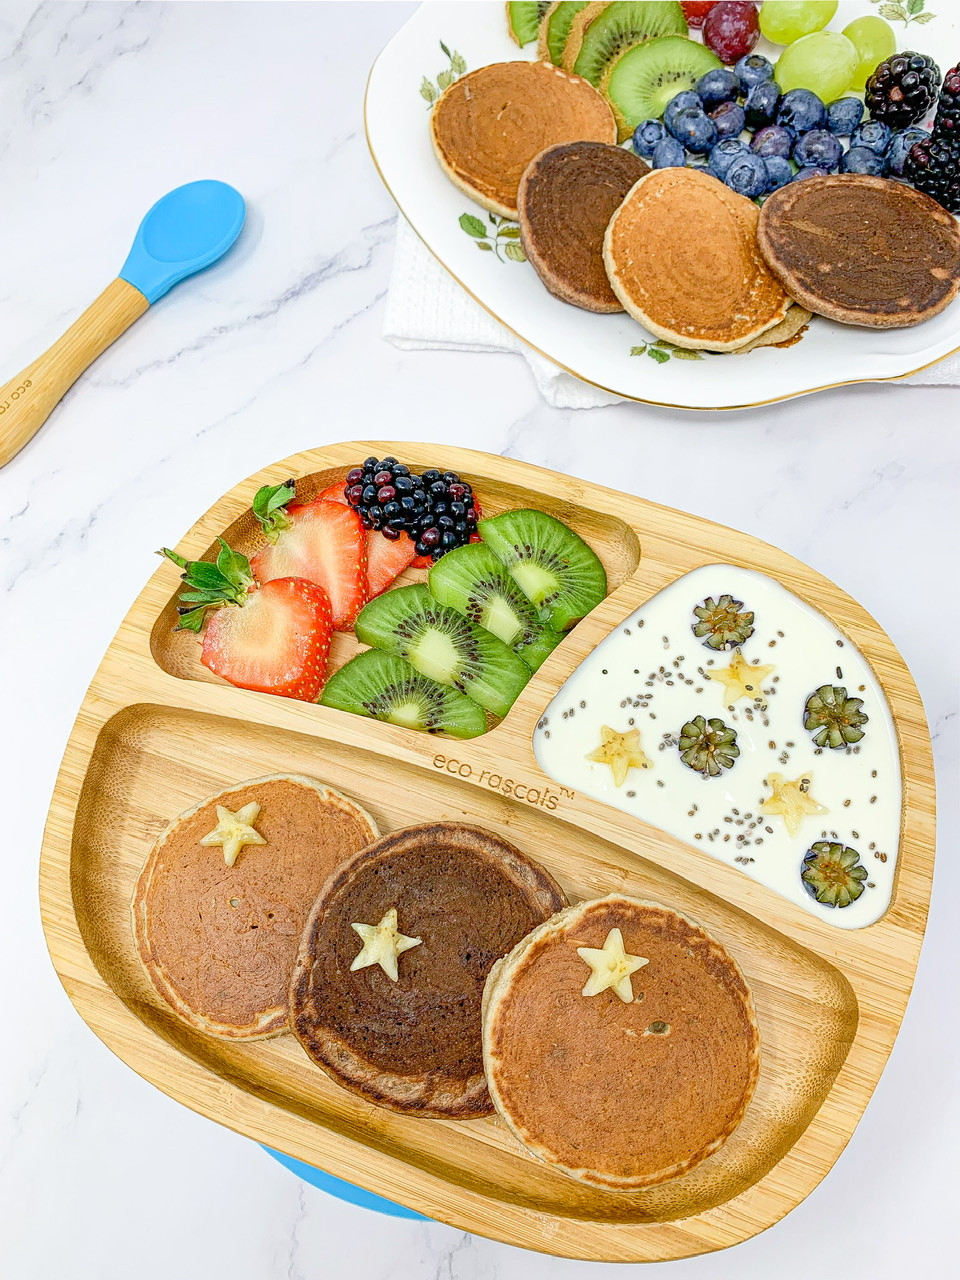 CHOCO-PEANUT BUTTER & PEANUT BUTTER PANCAKES in bamboo plate